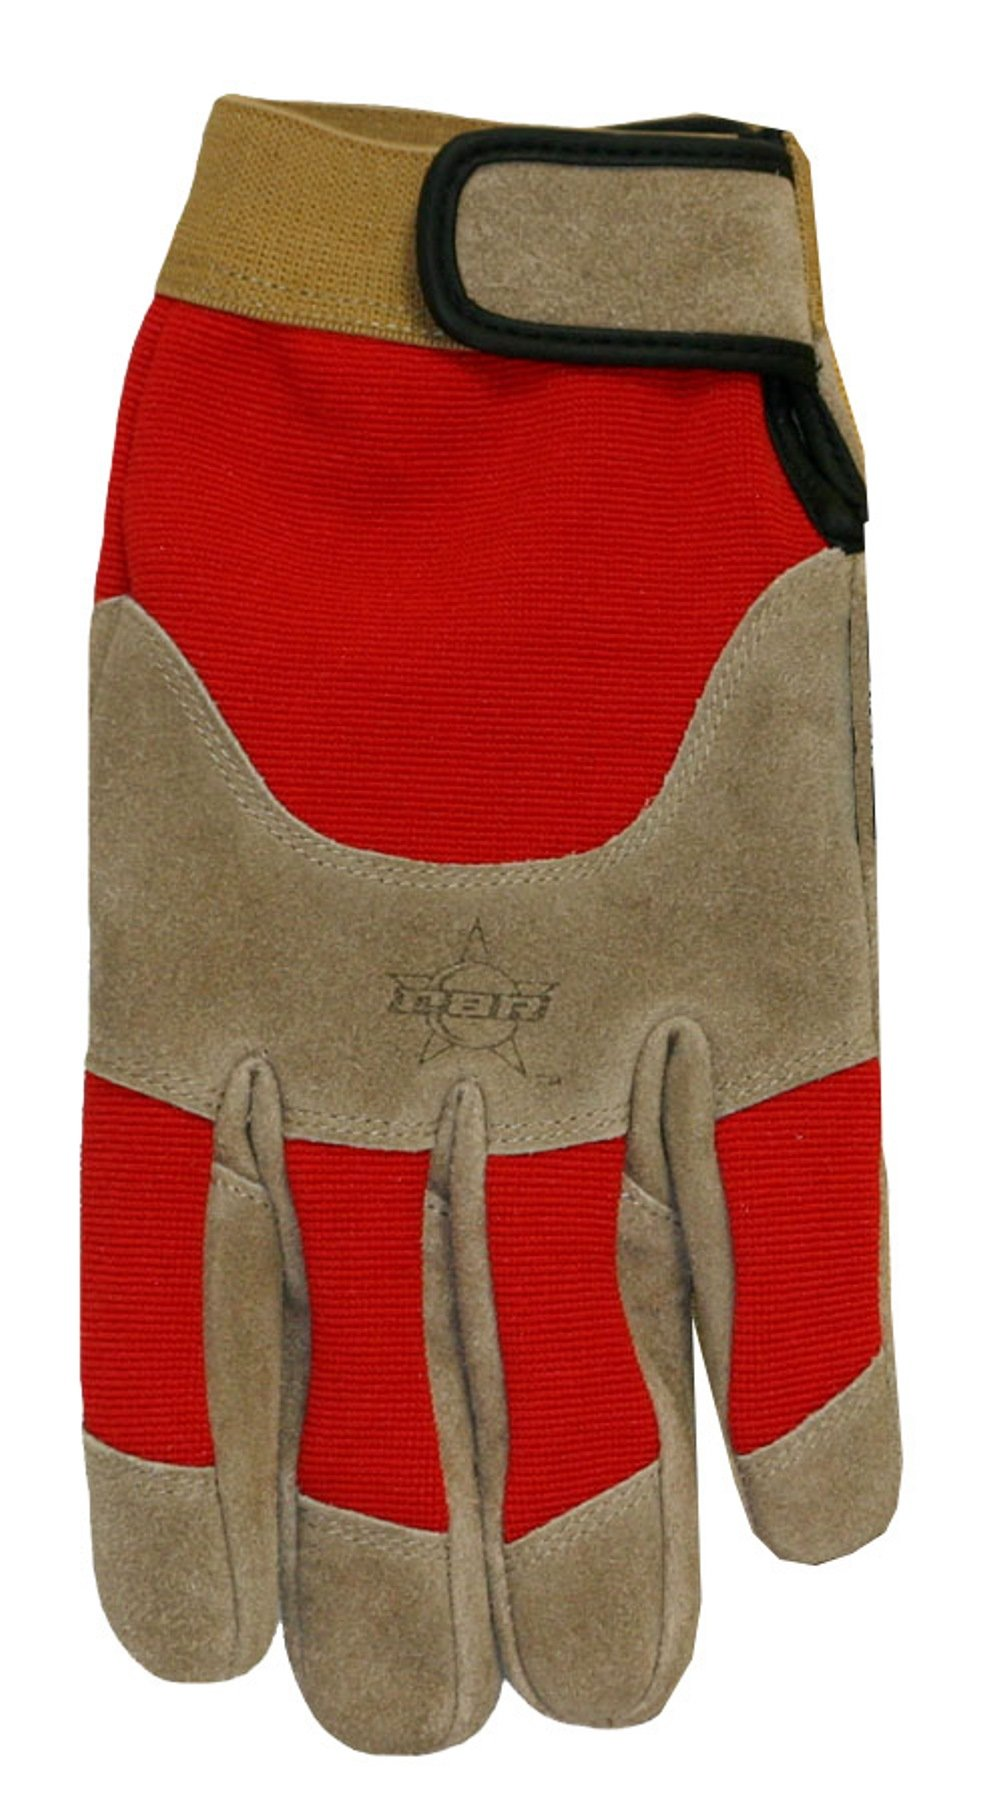 Professional Bull Rider (PBR) Suede Cowhide Leather Work Glove, Extra-Large, Brown/Red, PB200